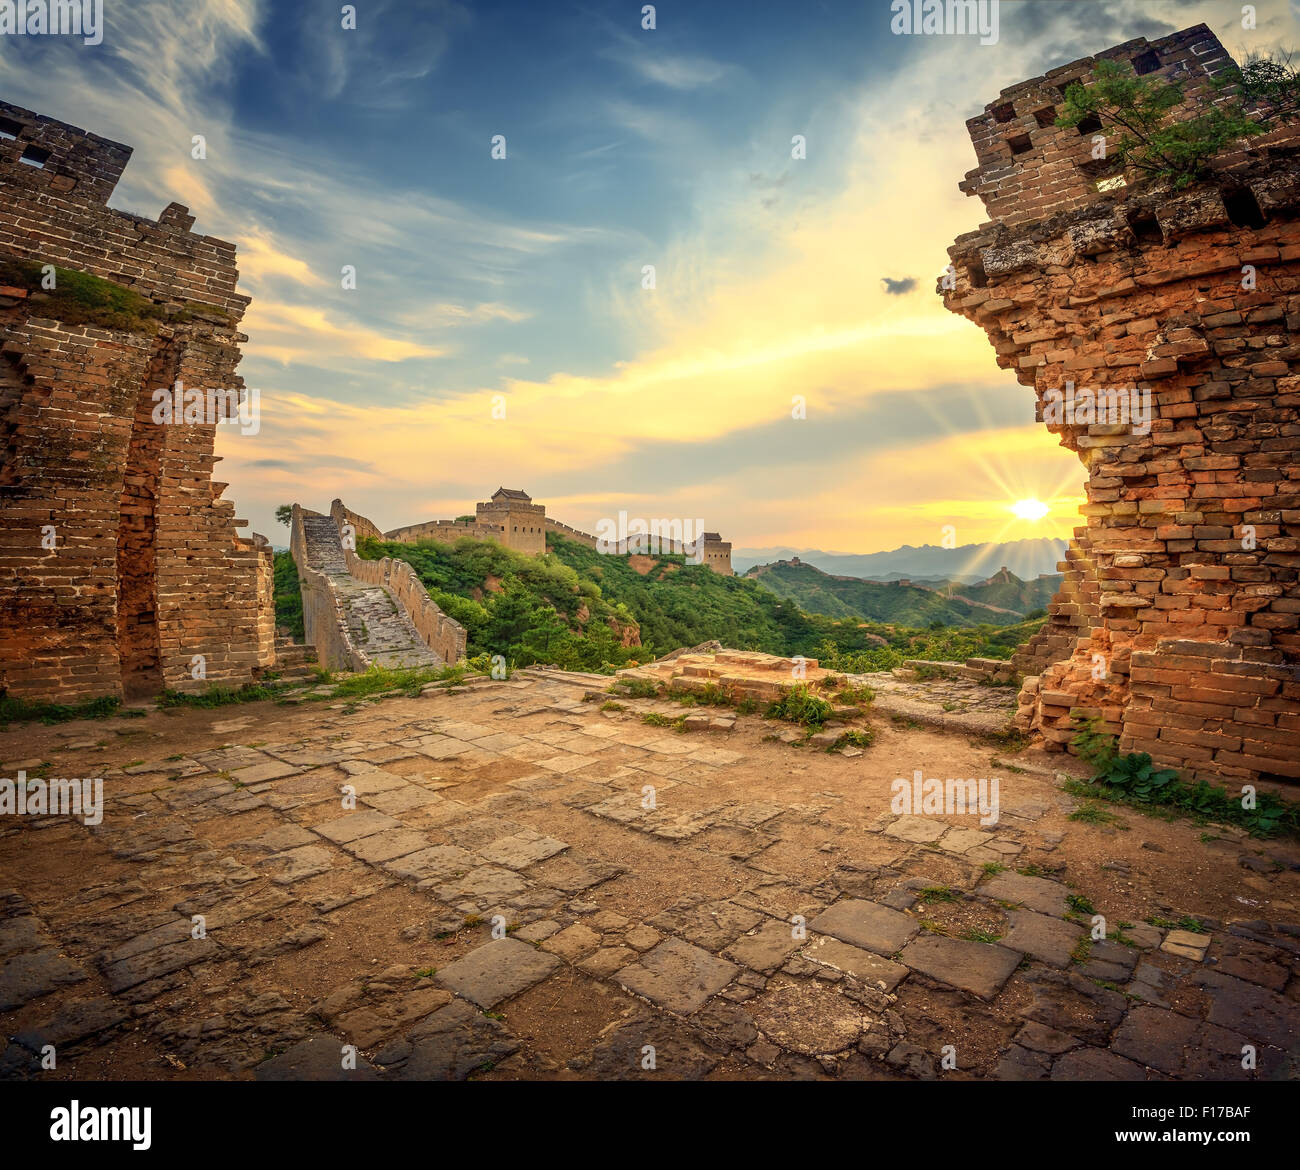 Great Wall of China at Sunrise - Stock Image